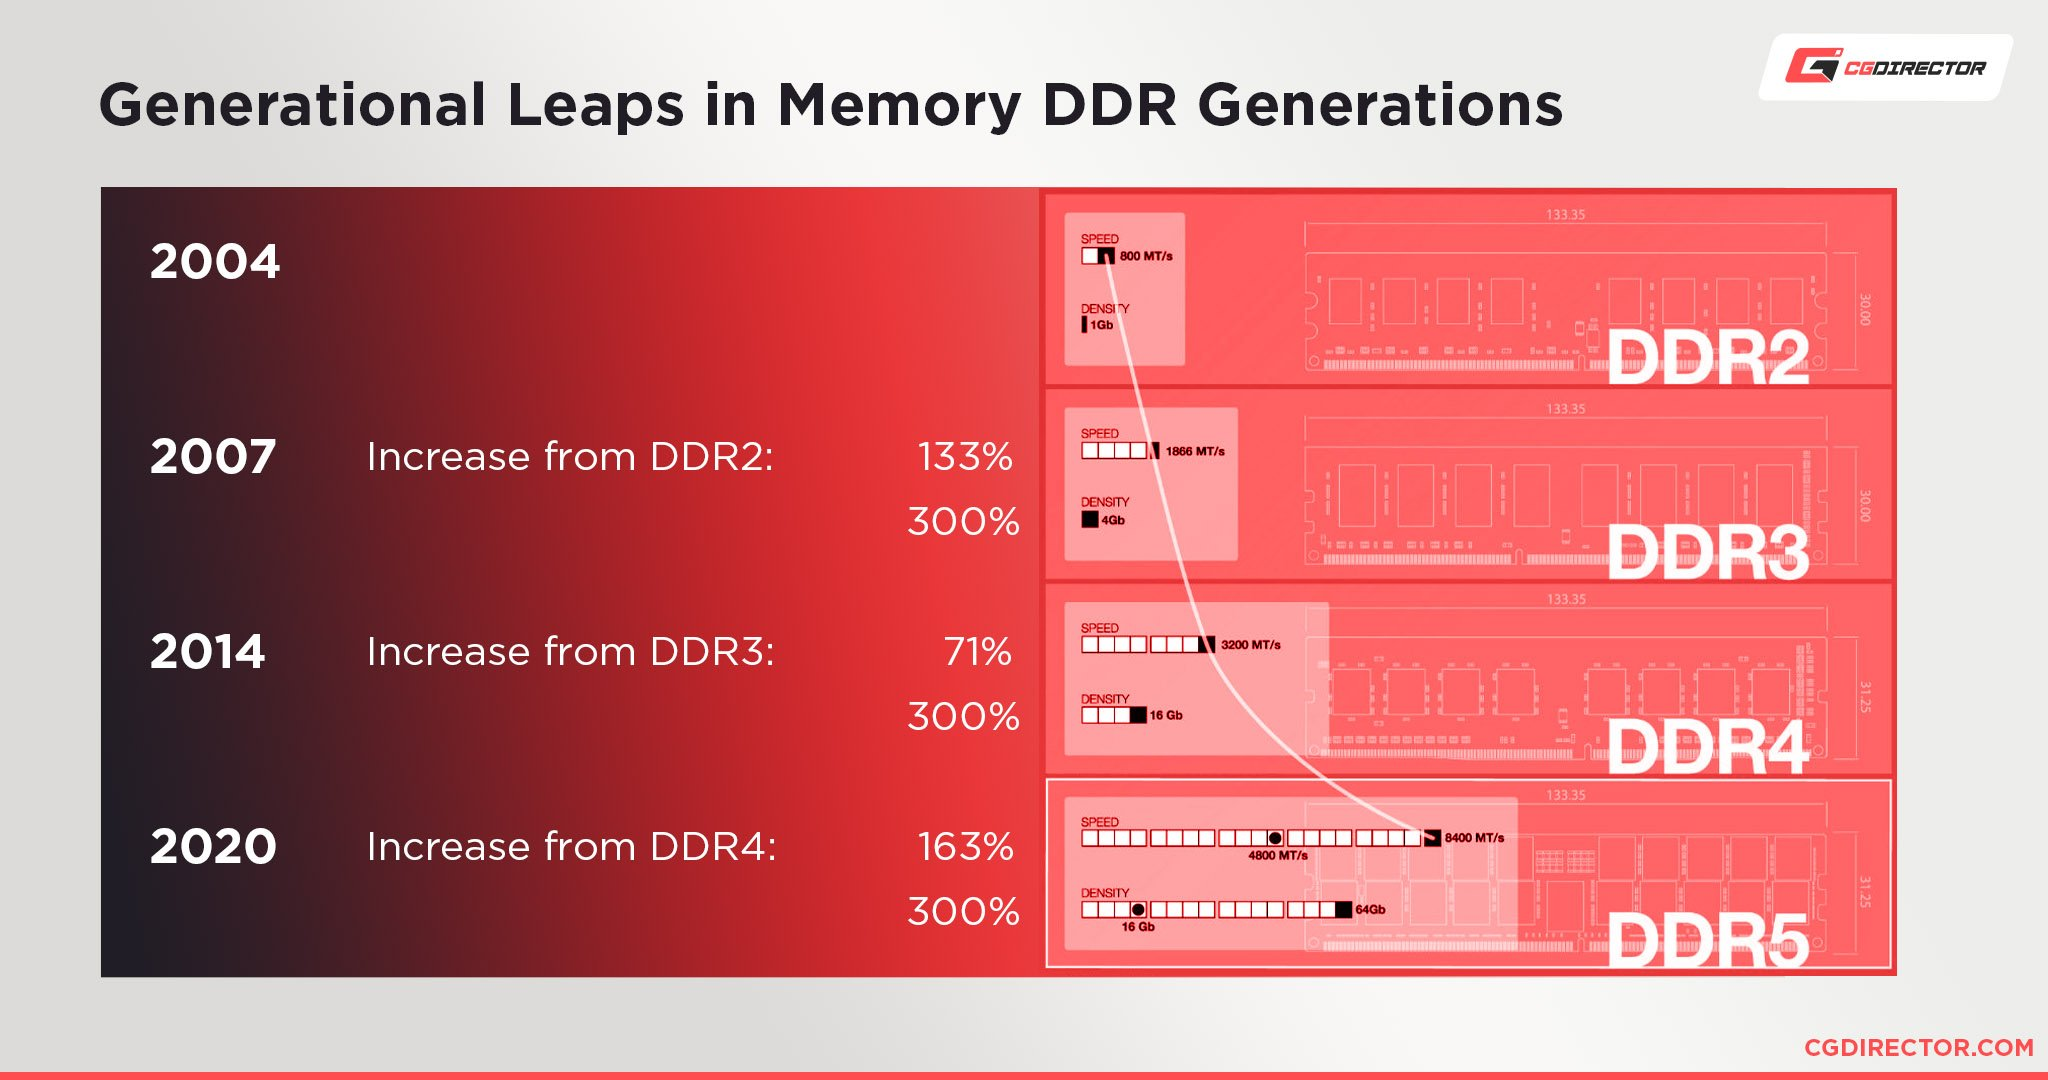 Generational Leaps in Memory DDR Generations